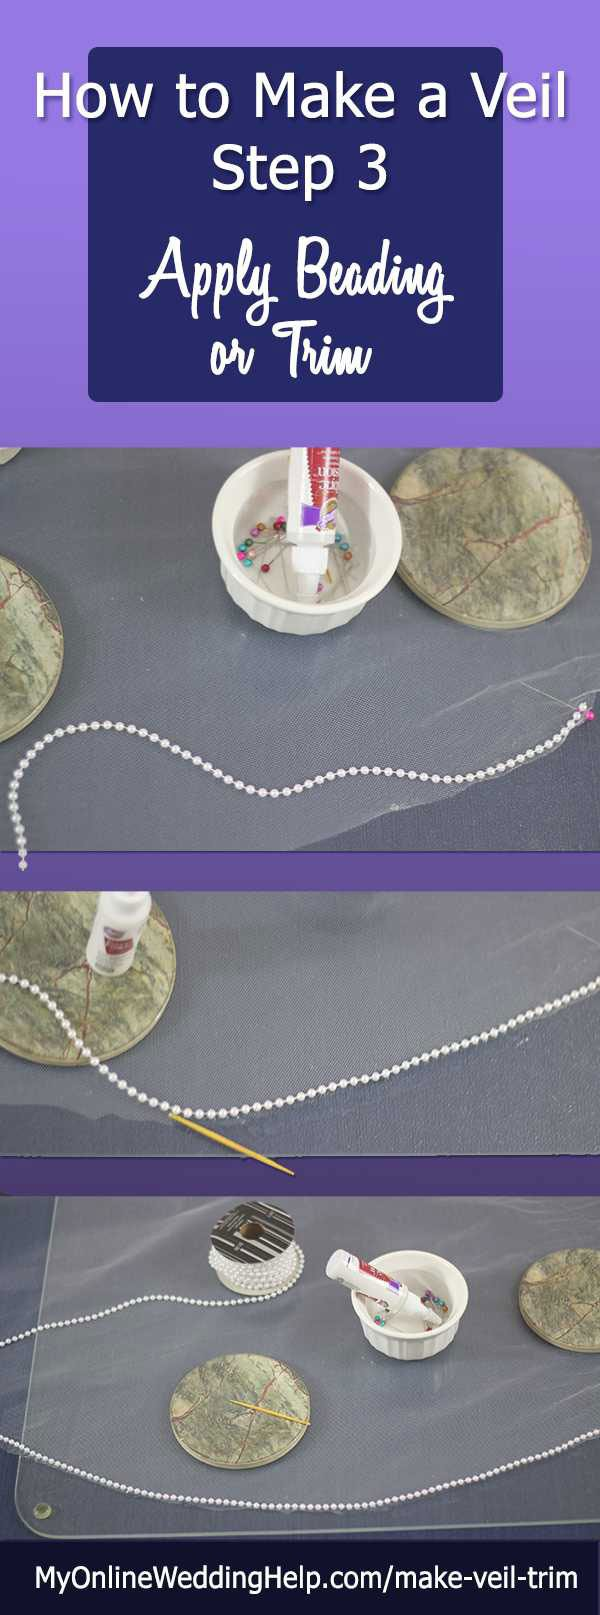 This is how to make a wedding veil step 3, how to DIY bridal veil edging or trim. Also, adding crystals or other decorations to the veil. #DIYVeil #VeilEdging #VeilLace